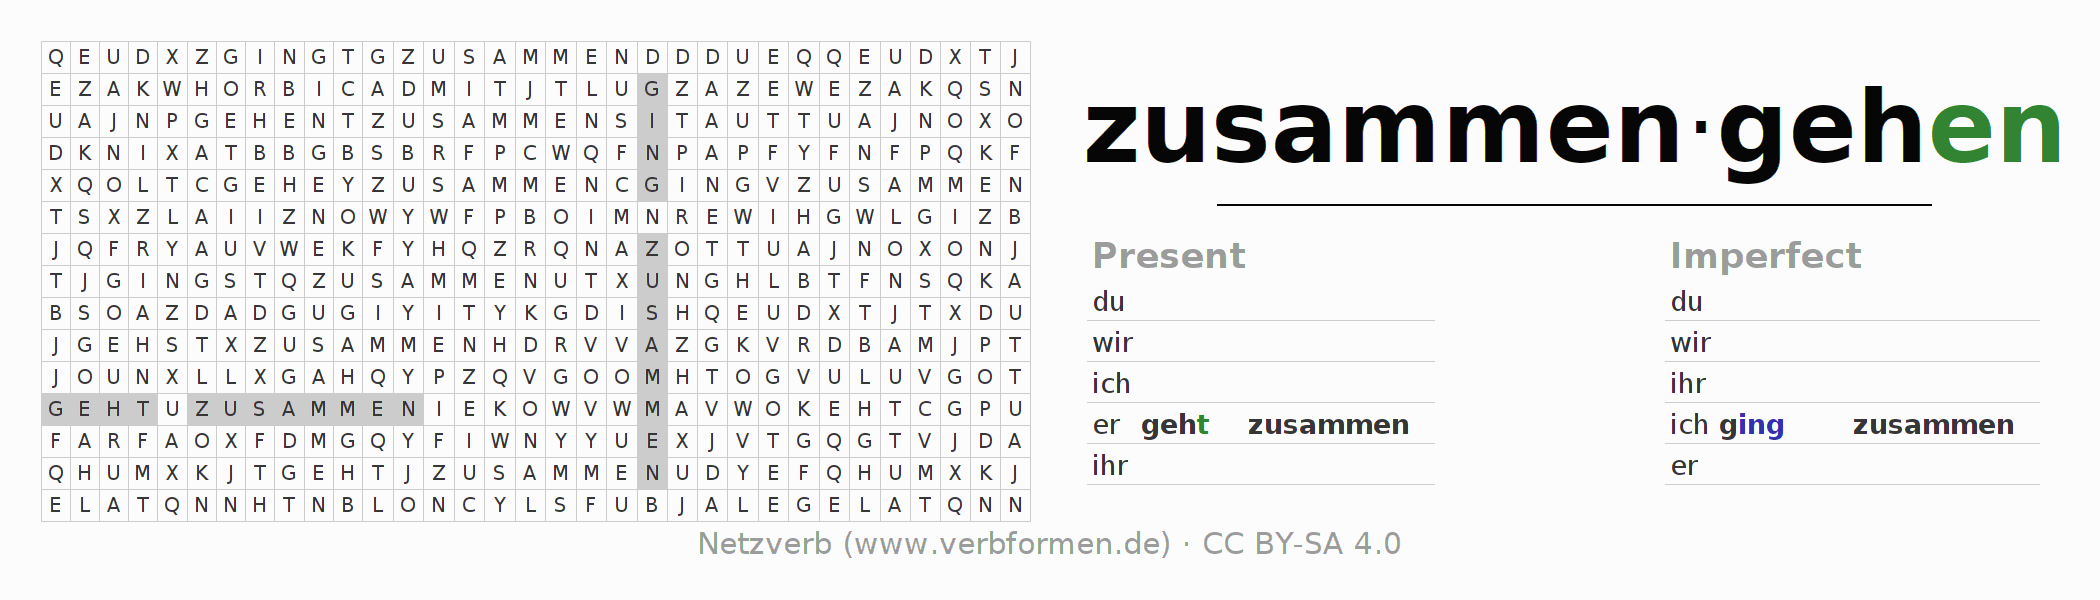 Word search puzzle for the conjugation of the verb zusammengehen